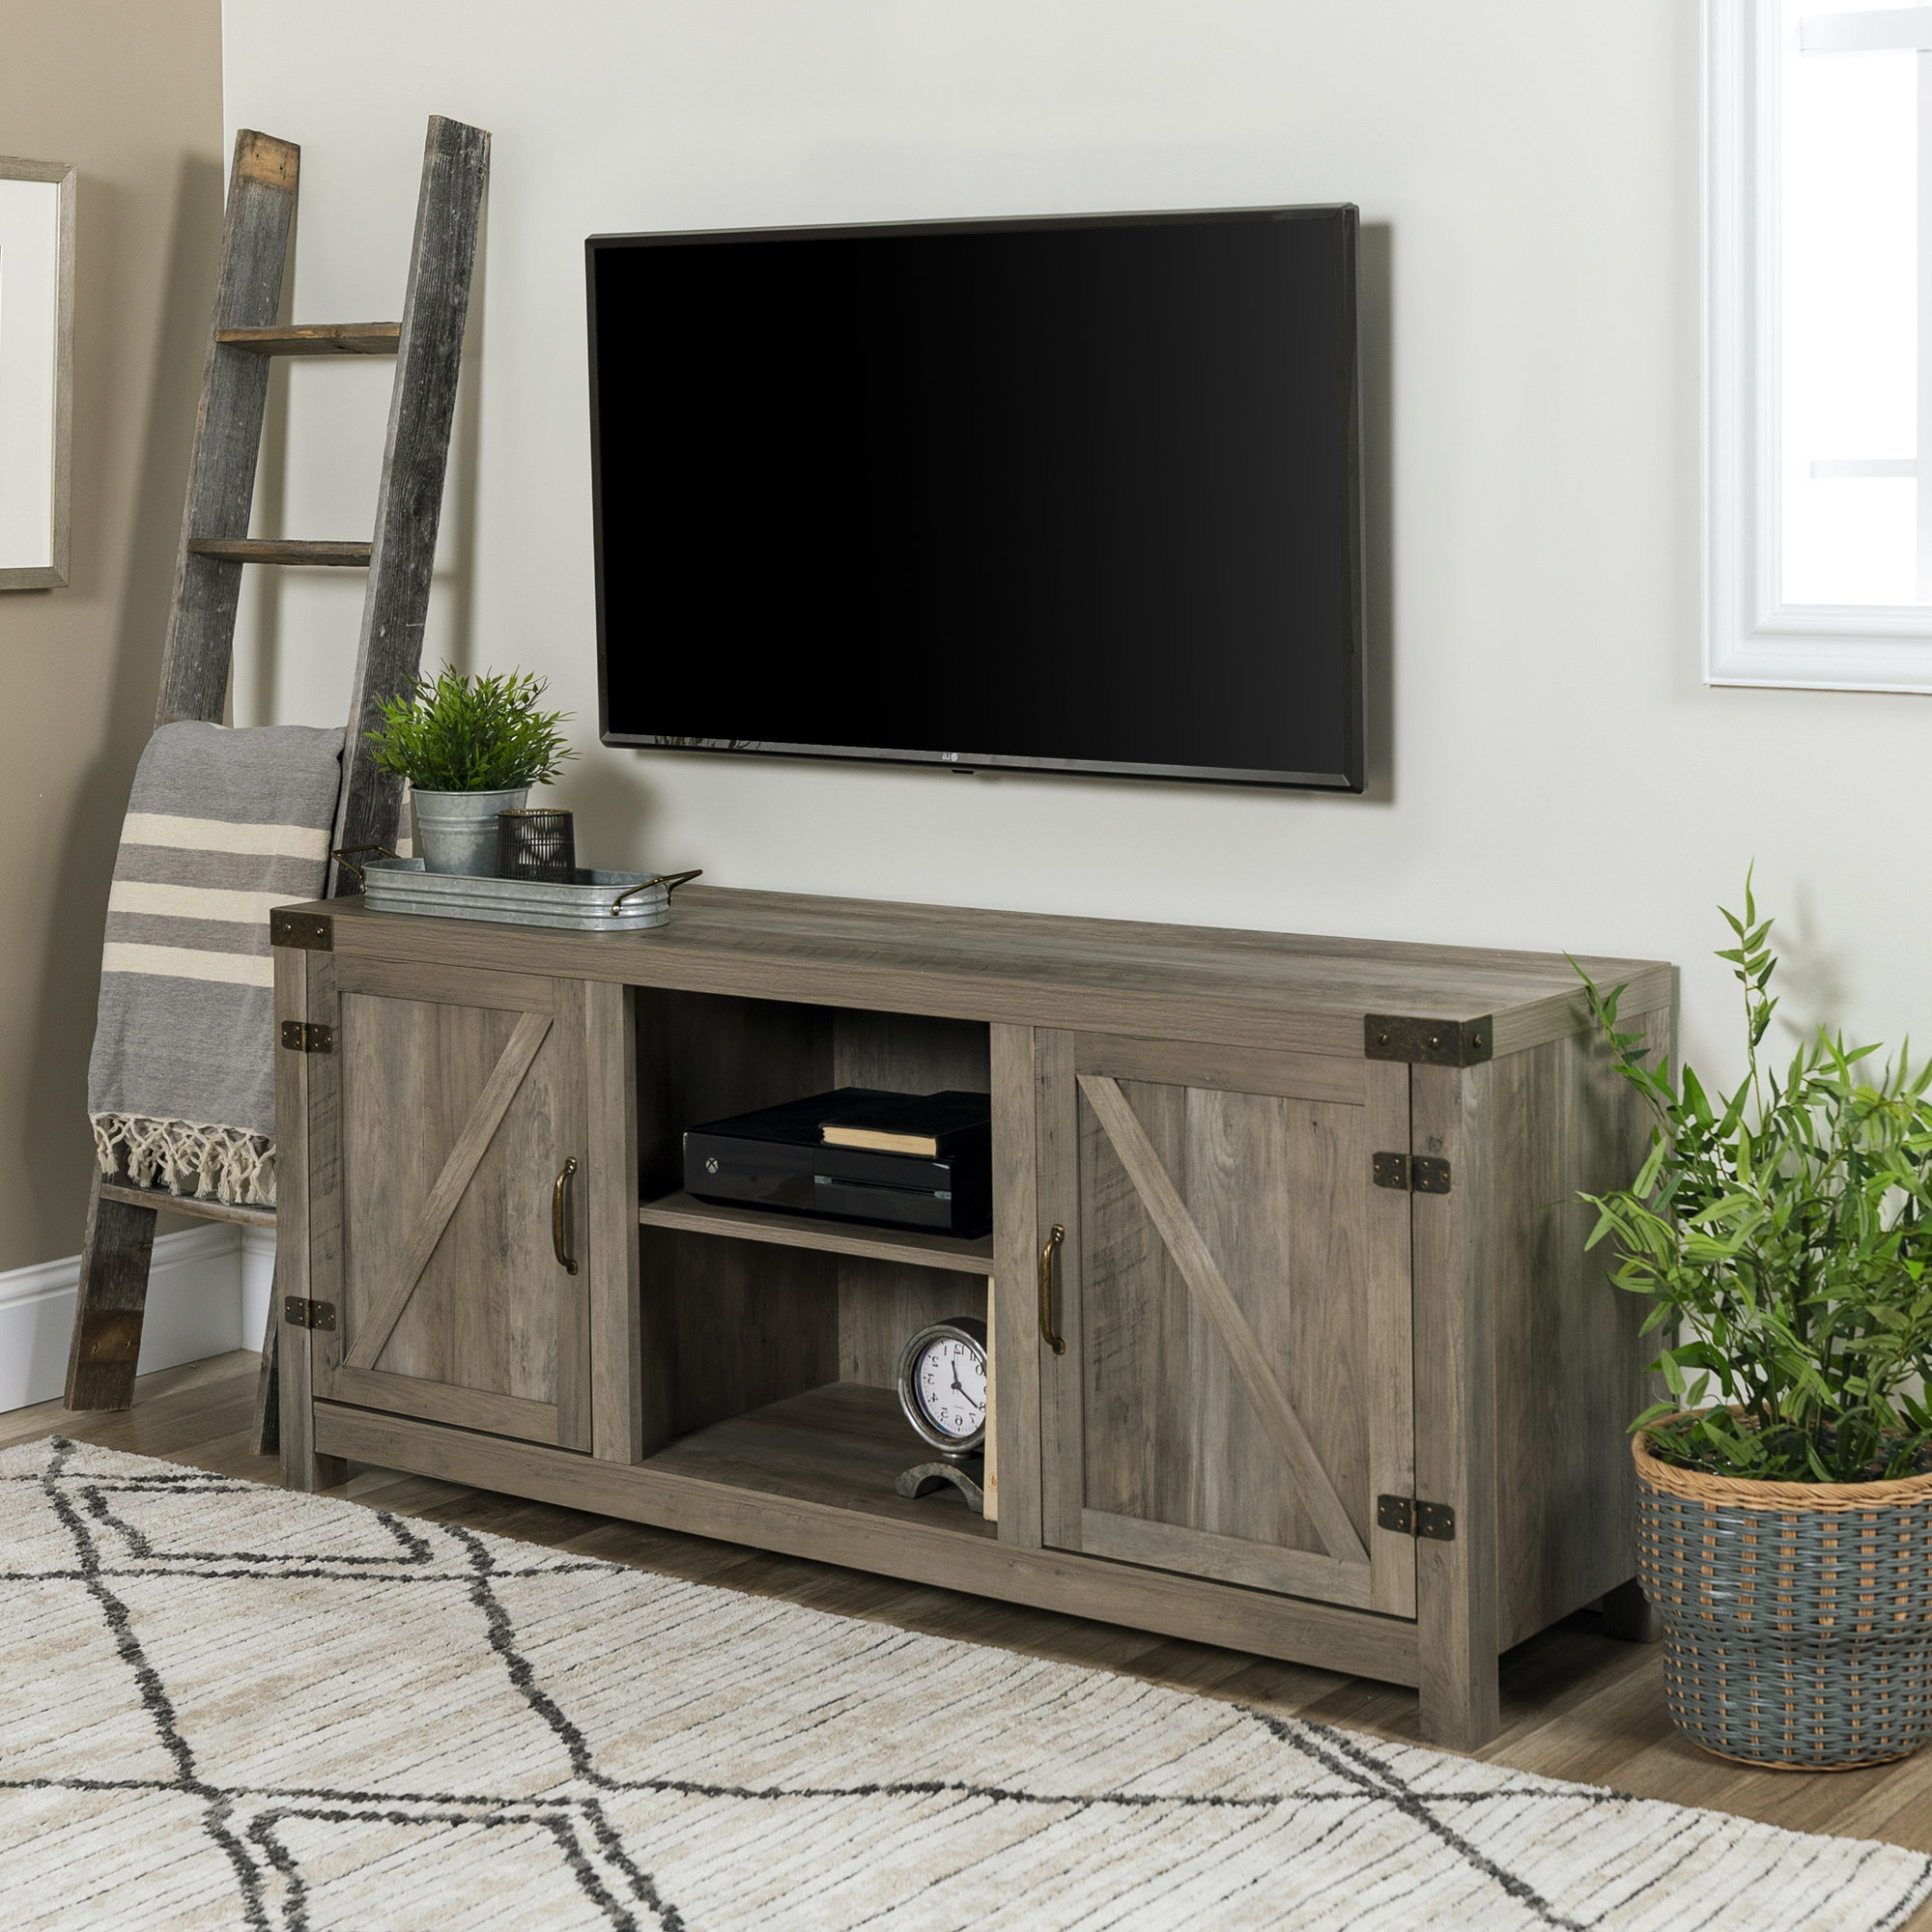 72 Inch Tv Stand | Wayfair Intended For Laurent 70 Inch Tv Stands (View 4 of 20)